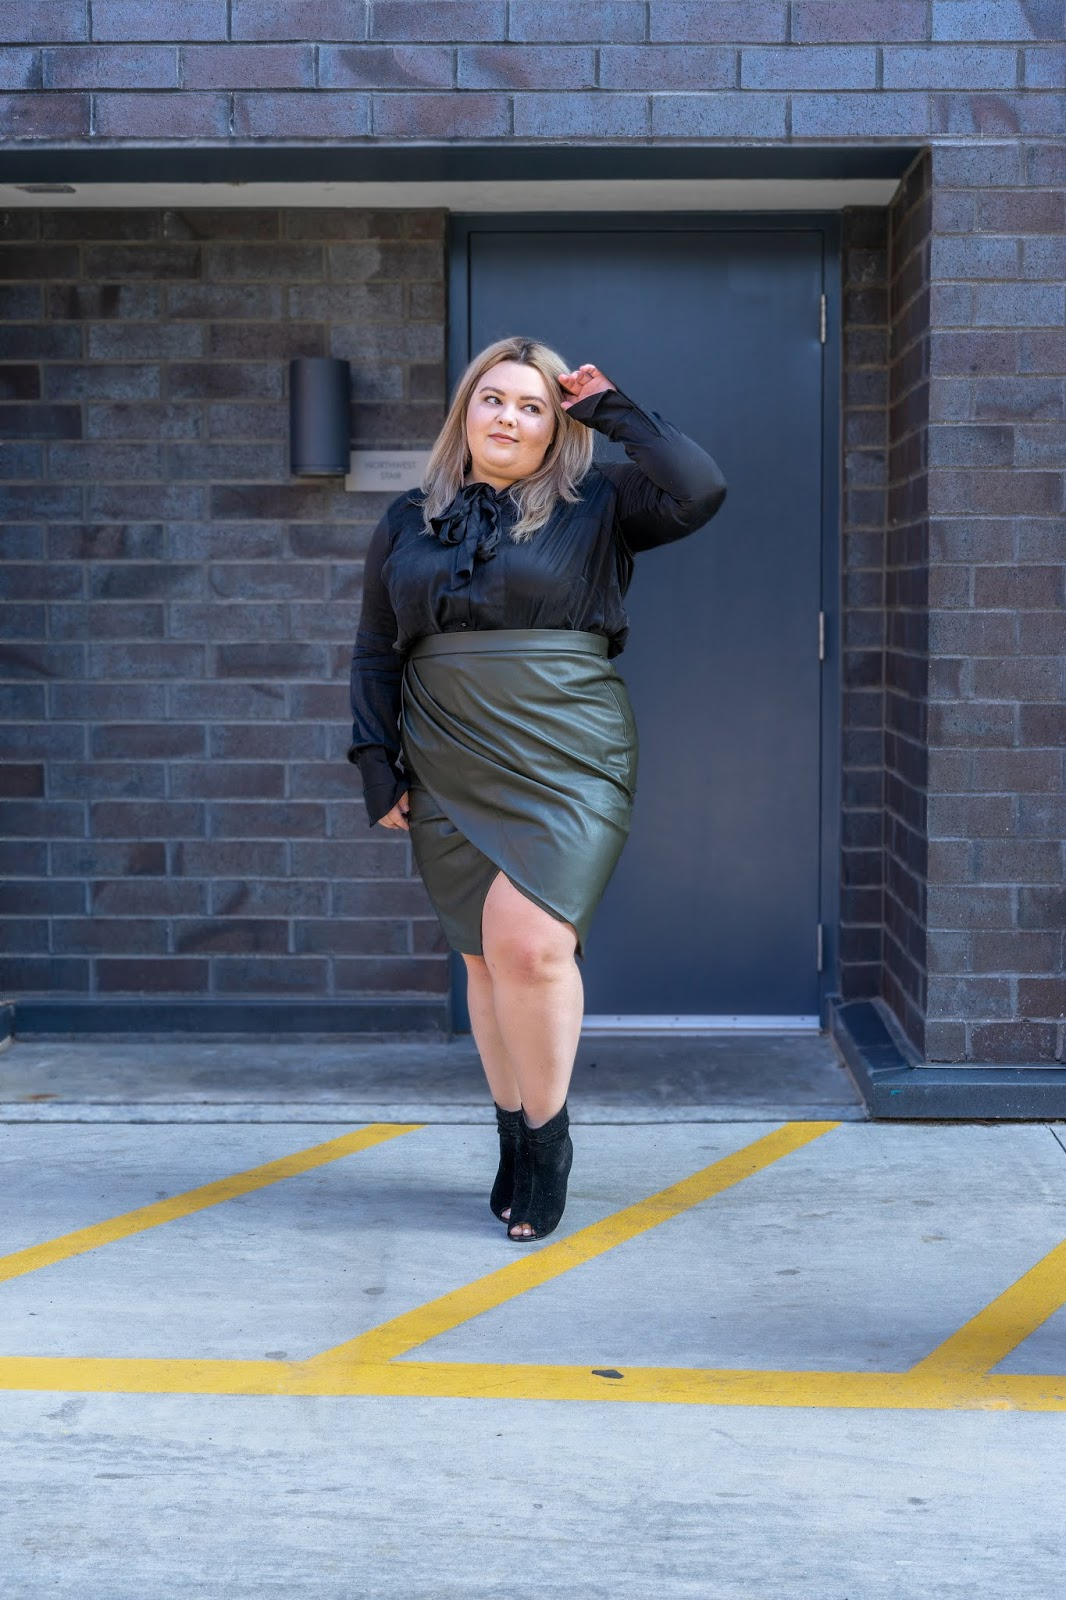 chicago petite plus size fashion blogger and model Natalie Craig reviews Marée Pour Toi's washed silk charmeuse blouse and pleather pleated skirt in olive.